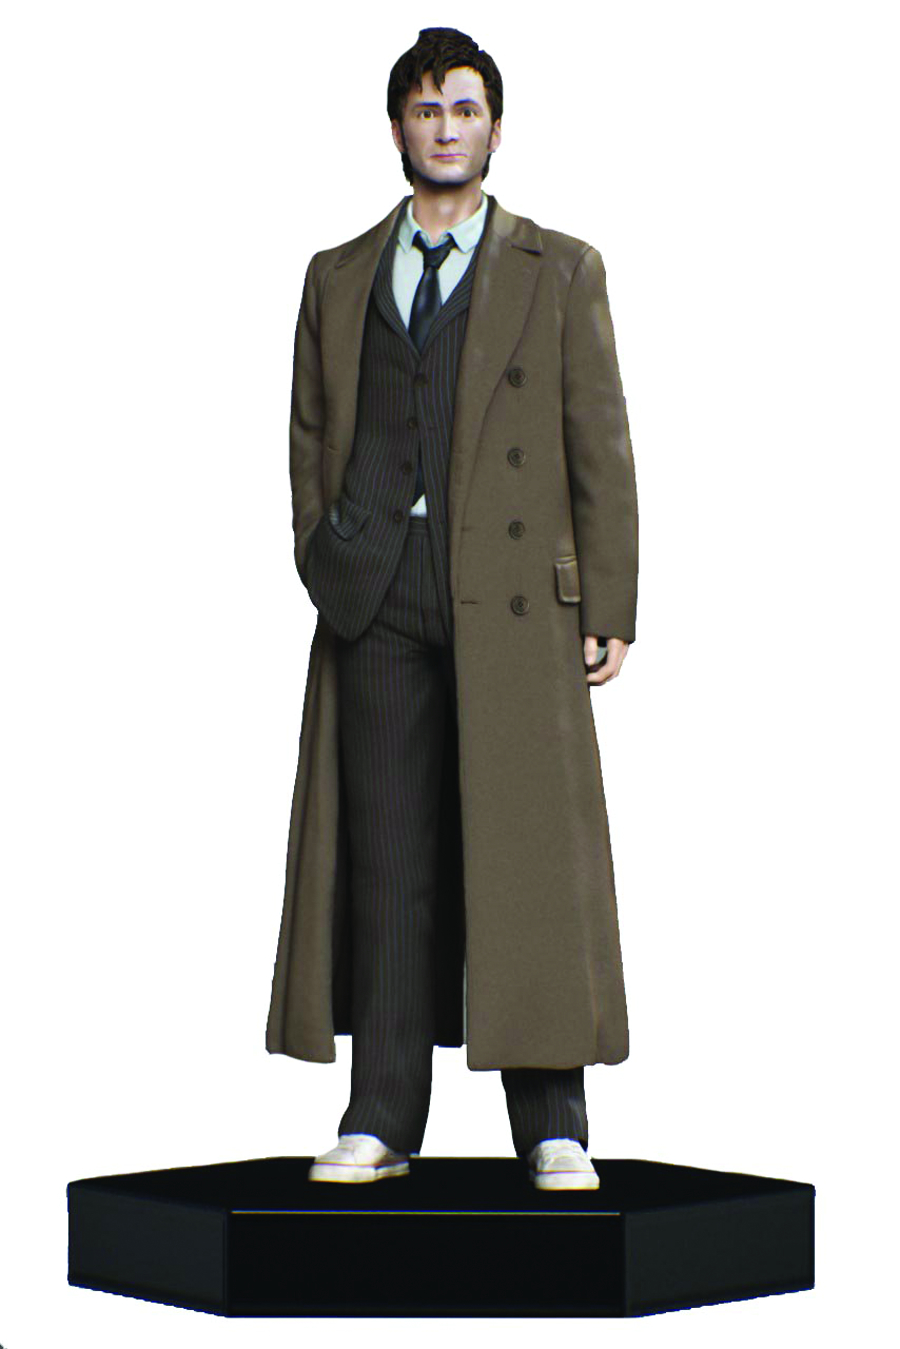 DOCTOR WHO FIG COLL #8 10TH DOCTOR